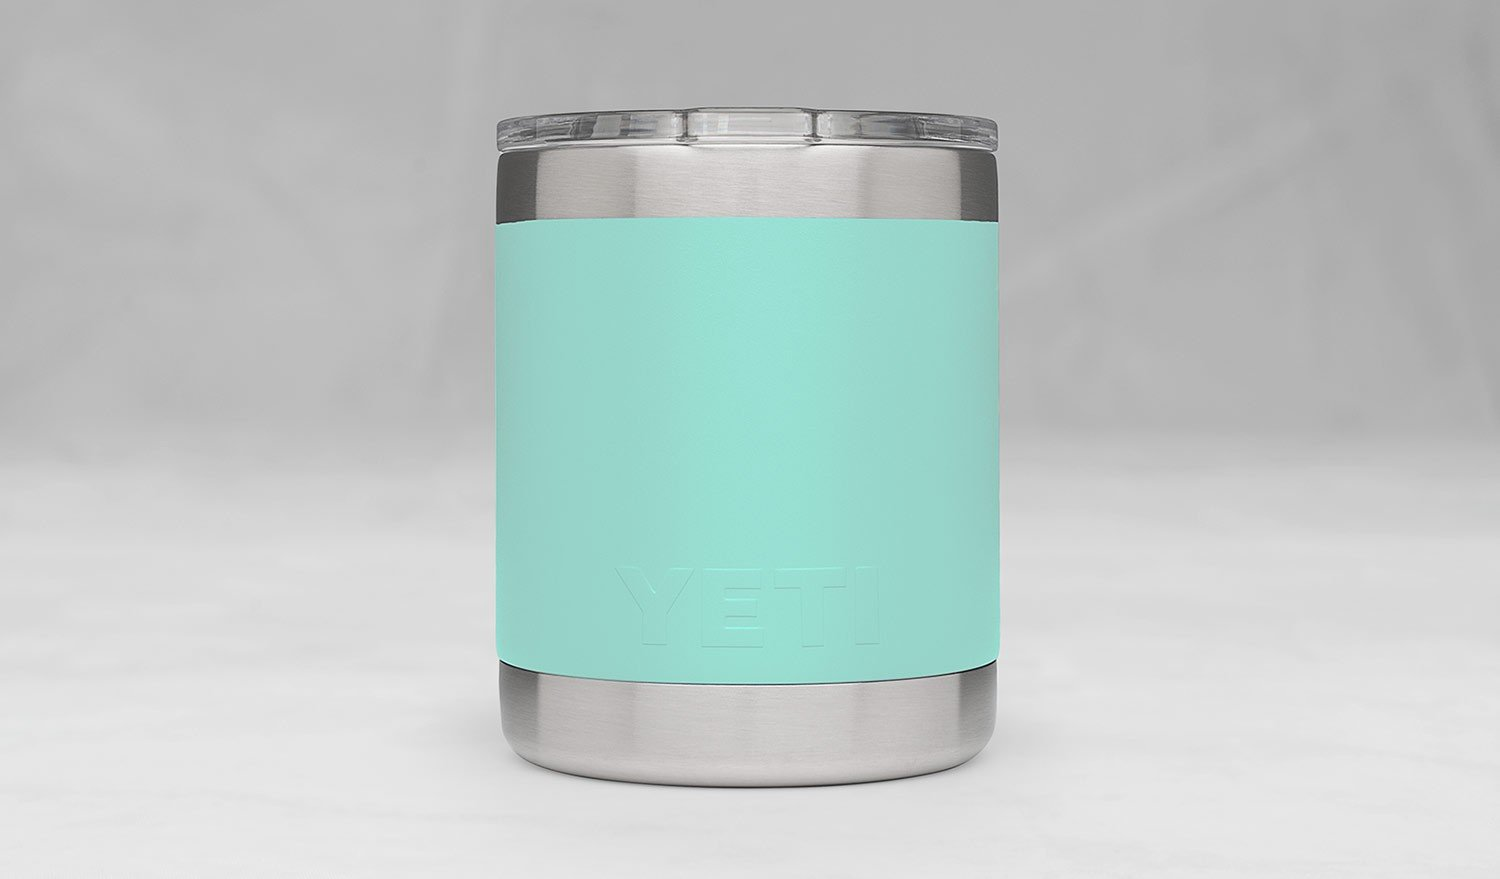 YETI Rambler 10oz Vacuum Insulated Stainless Steel Lowball with Lid, Seafoam DuraCoat by YETI (Image #2)